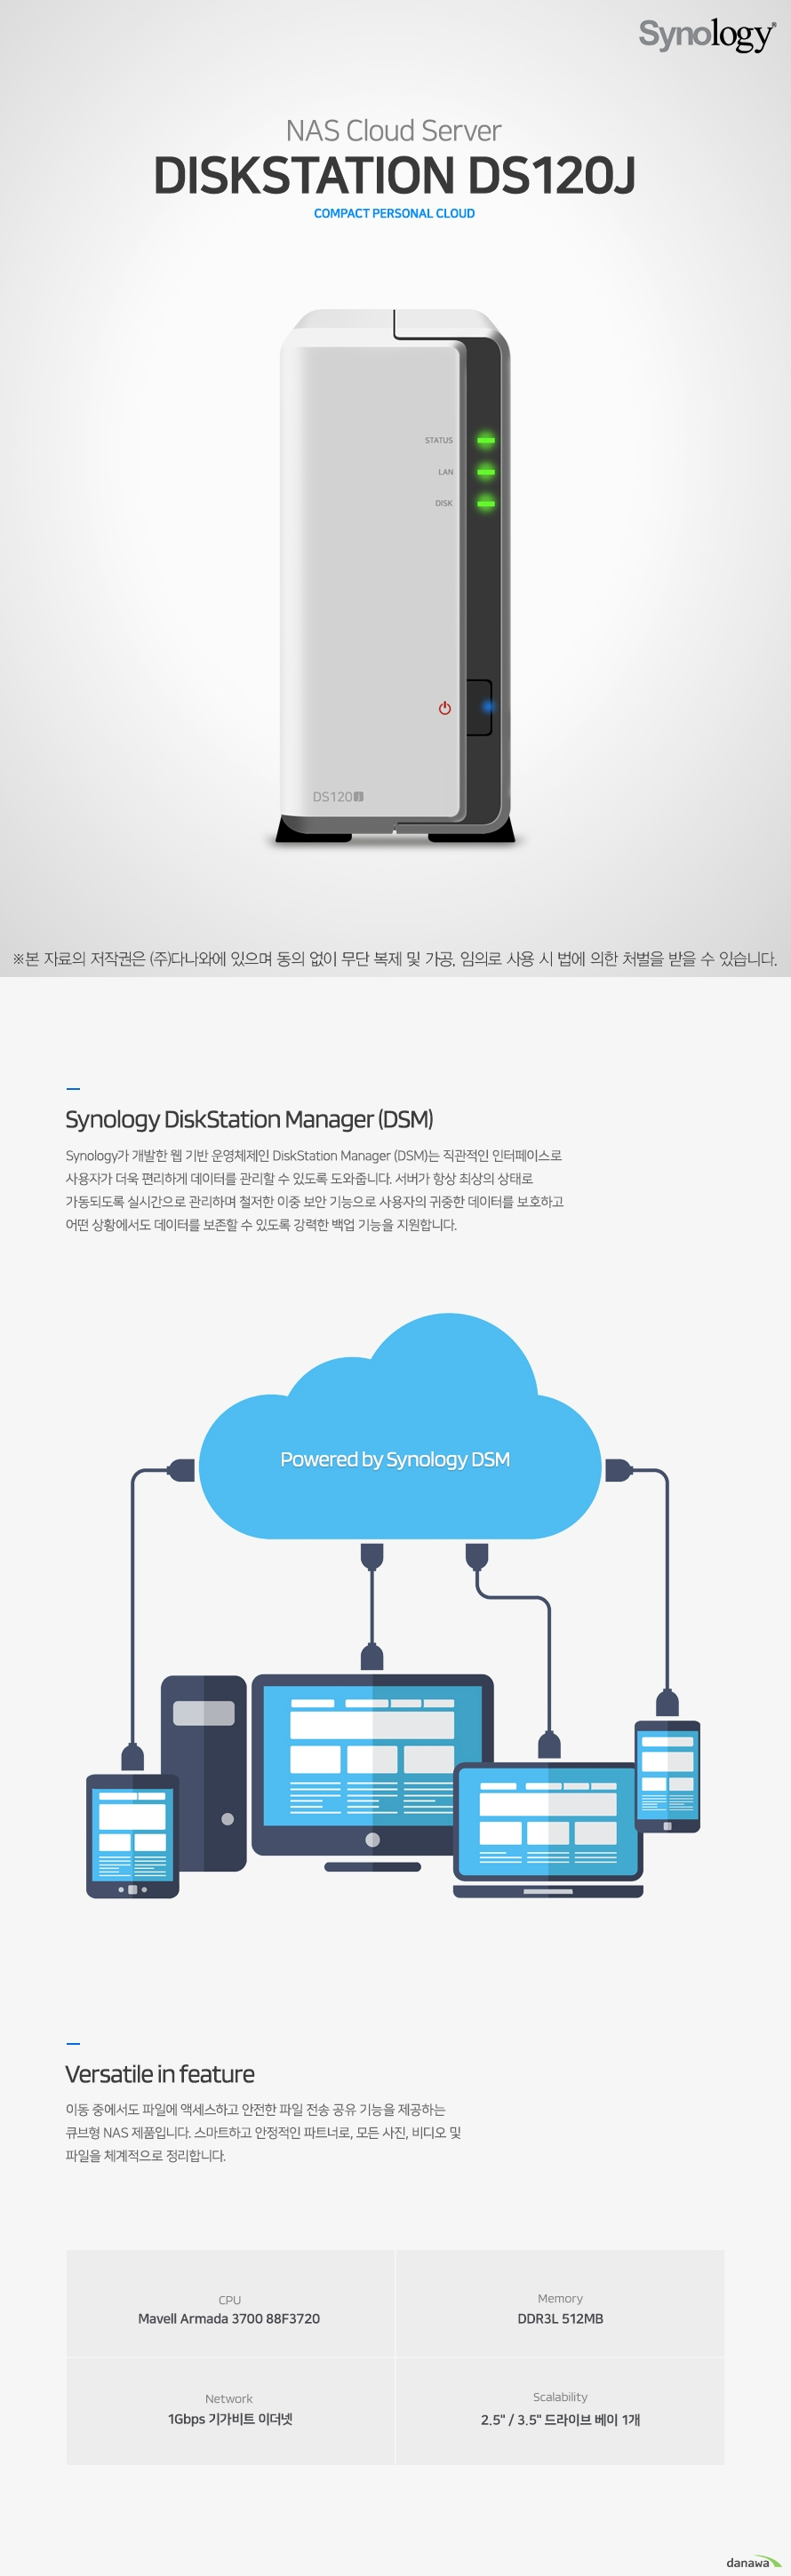 Synology DS120j (3TB)